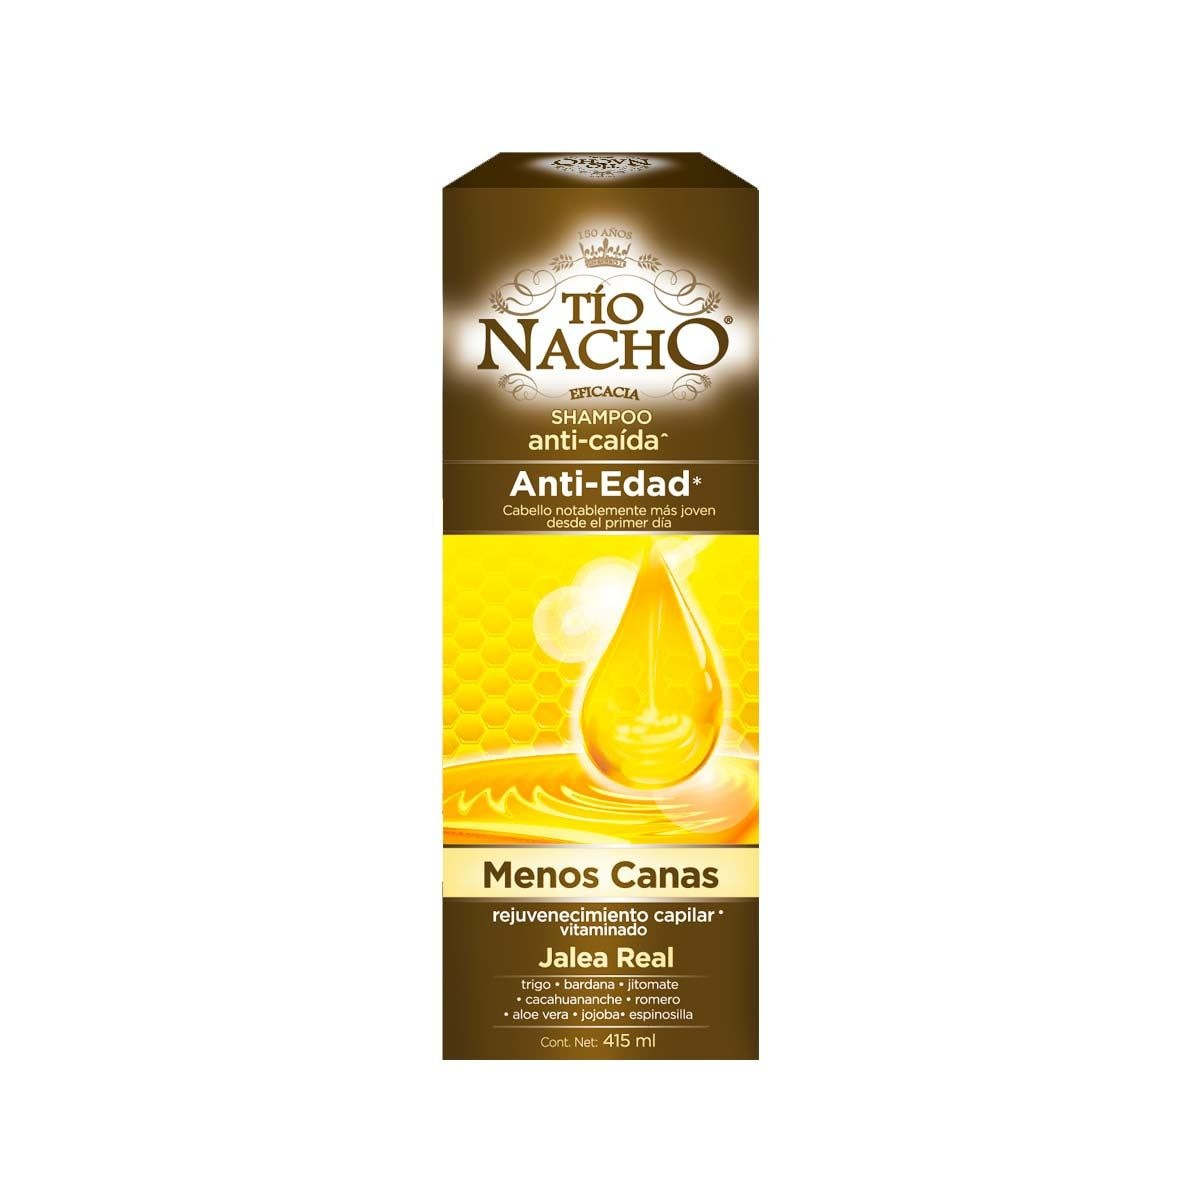 Tio nacho shampoo anti-edad 415 ml  - Sanborns